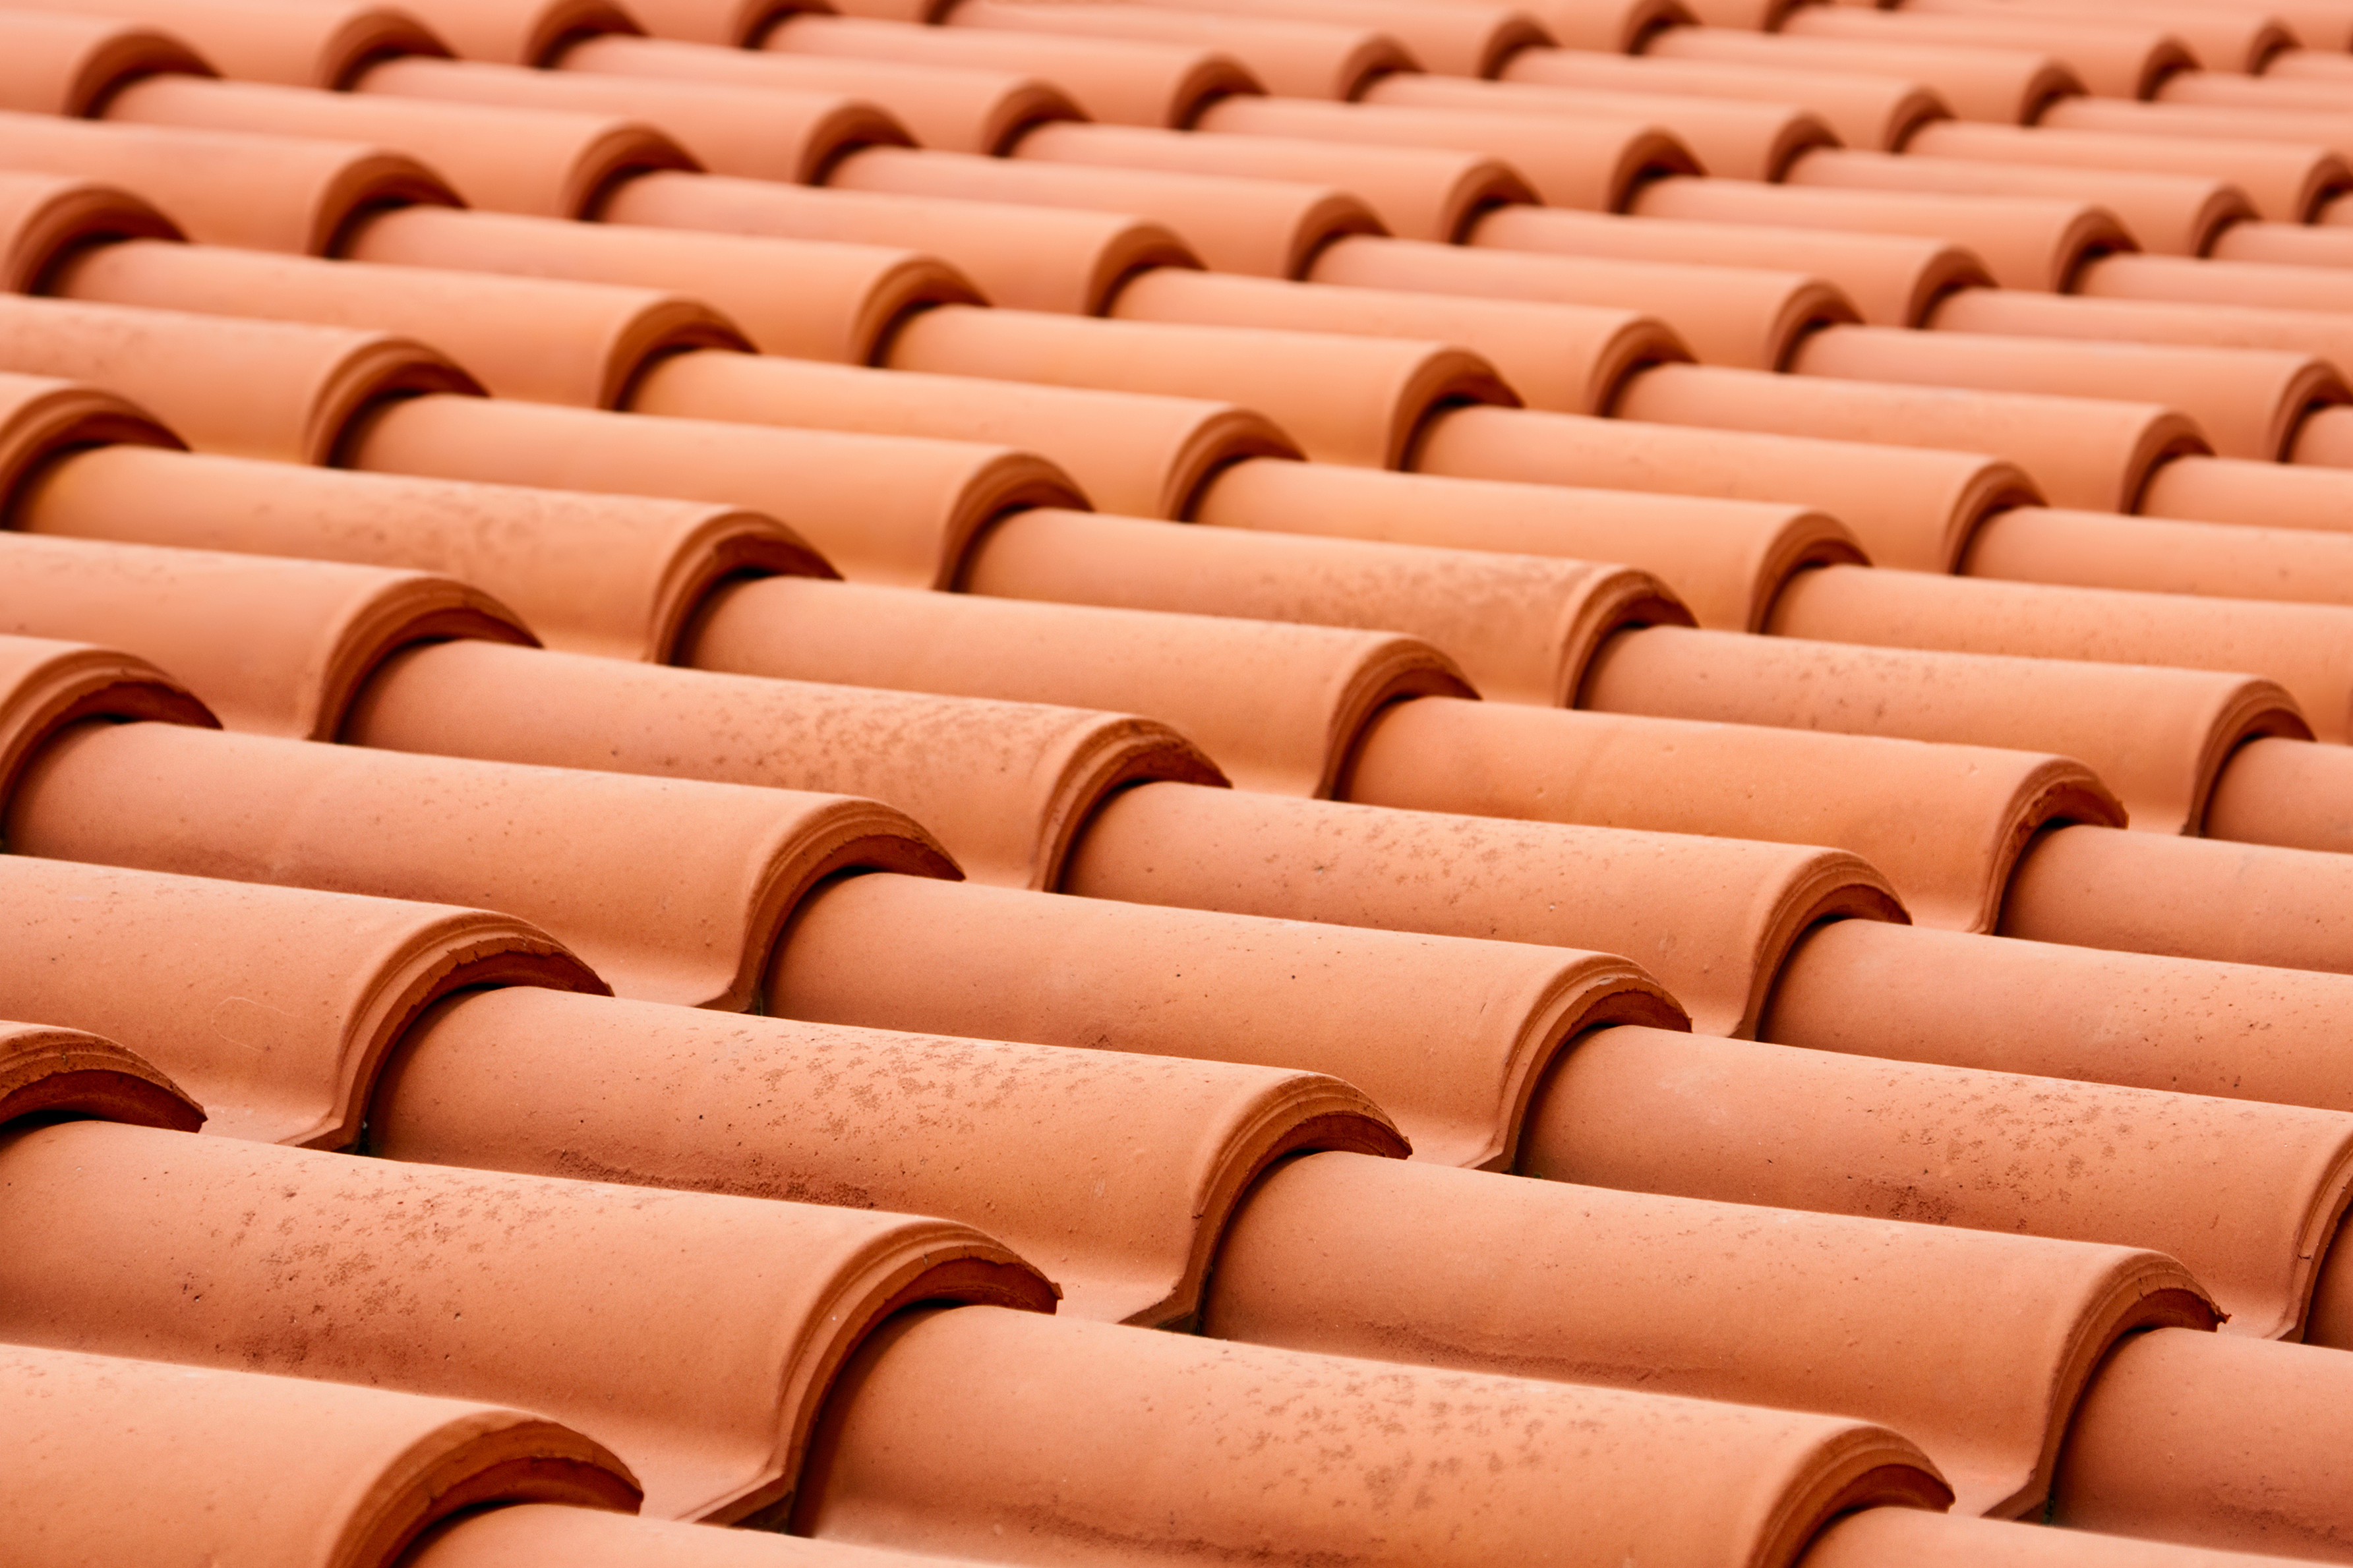 4 Clay Tiles Pakistan Spanish Roof Tiles Clay Roofing Tiles Khaprail Tiles in Islamabad.